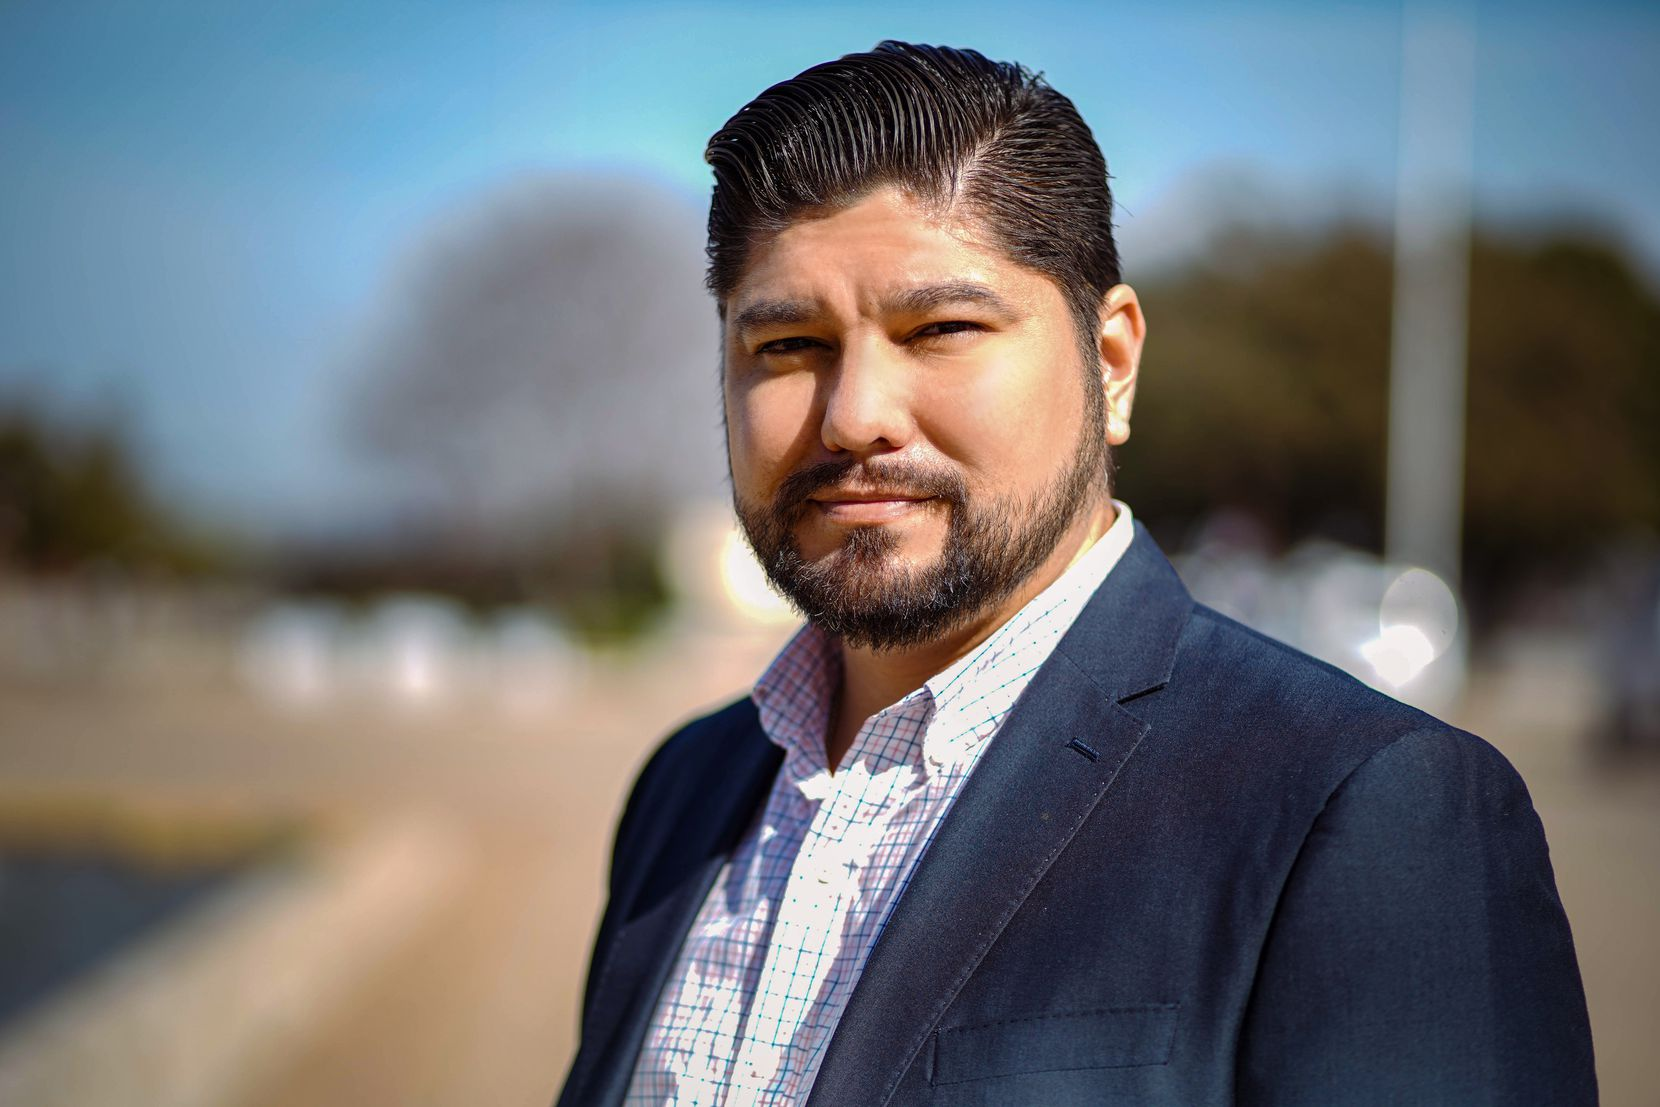 Israel Varela is a candidate for the Dallas City Council's District 7 in the May 1 election.